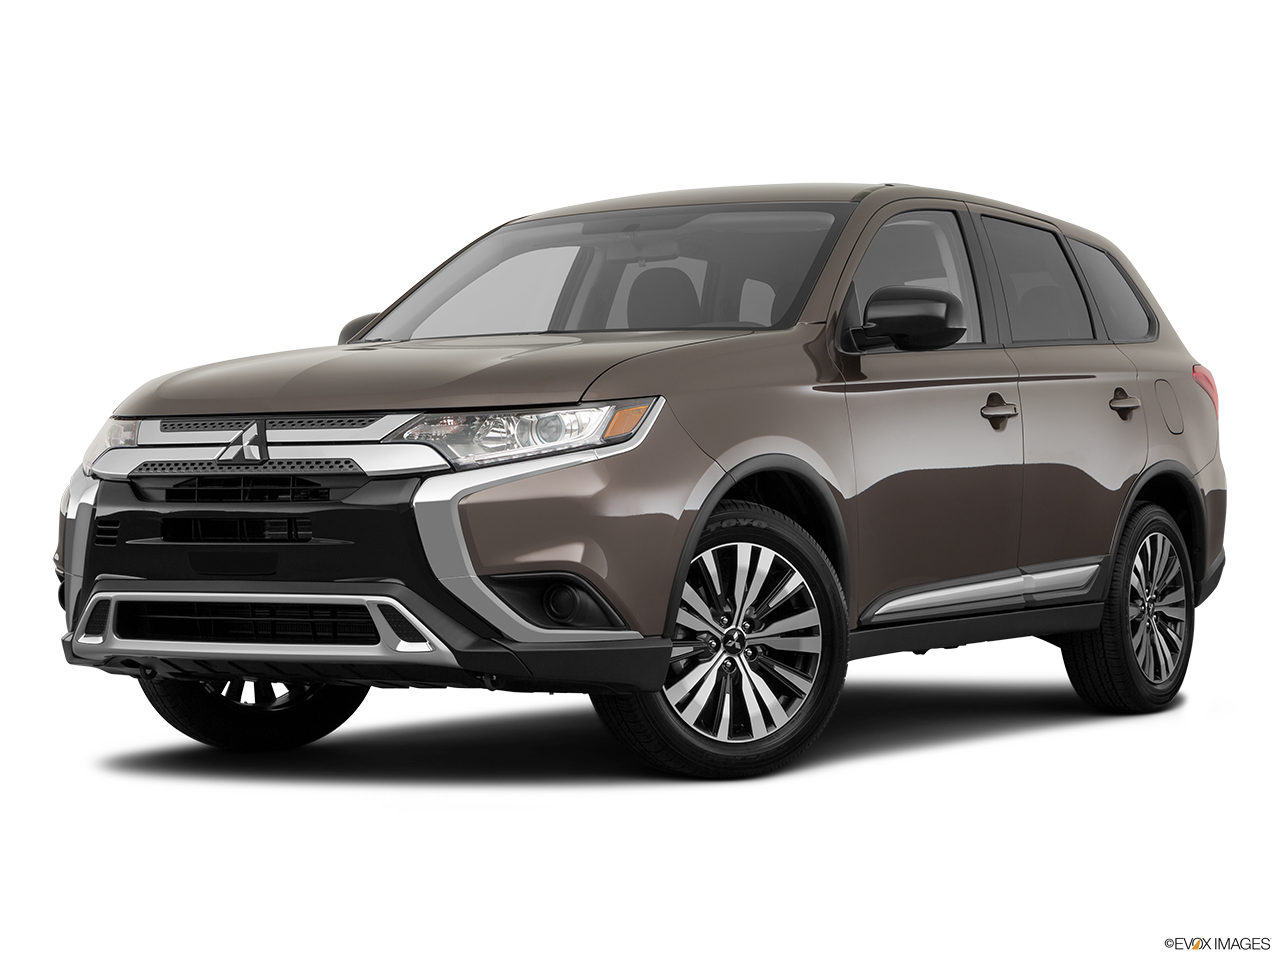 2019 Mitsubishi Outlander PHEV - PG&E EV Savings Calculator